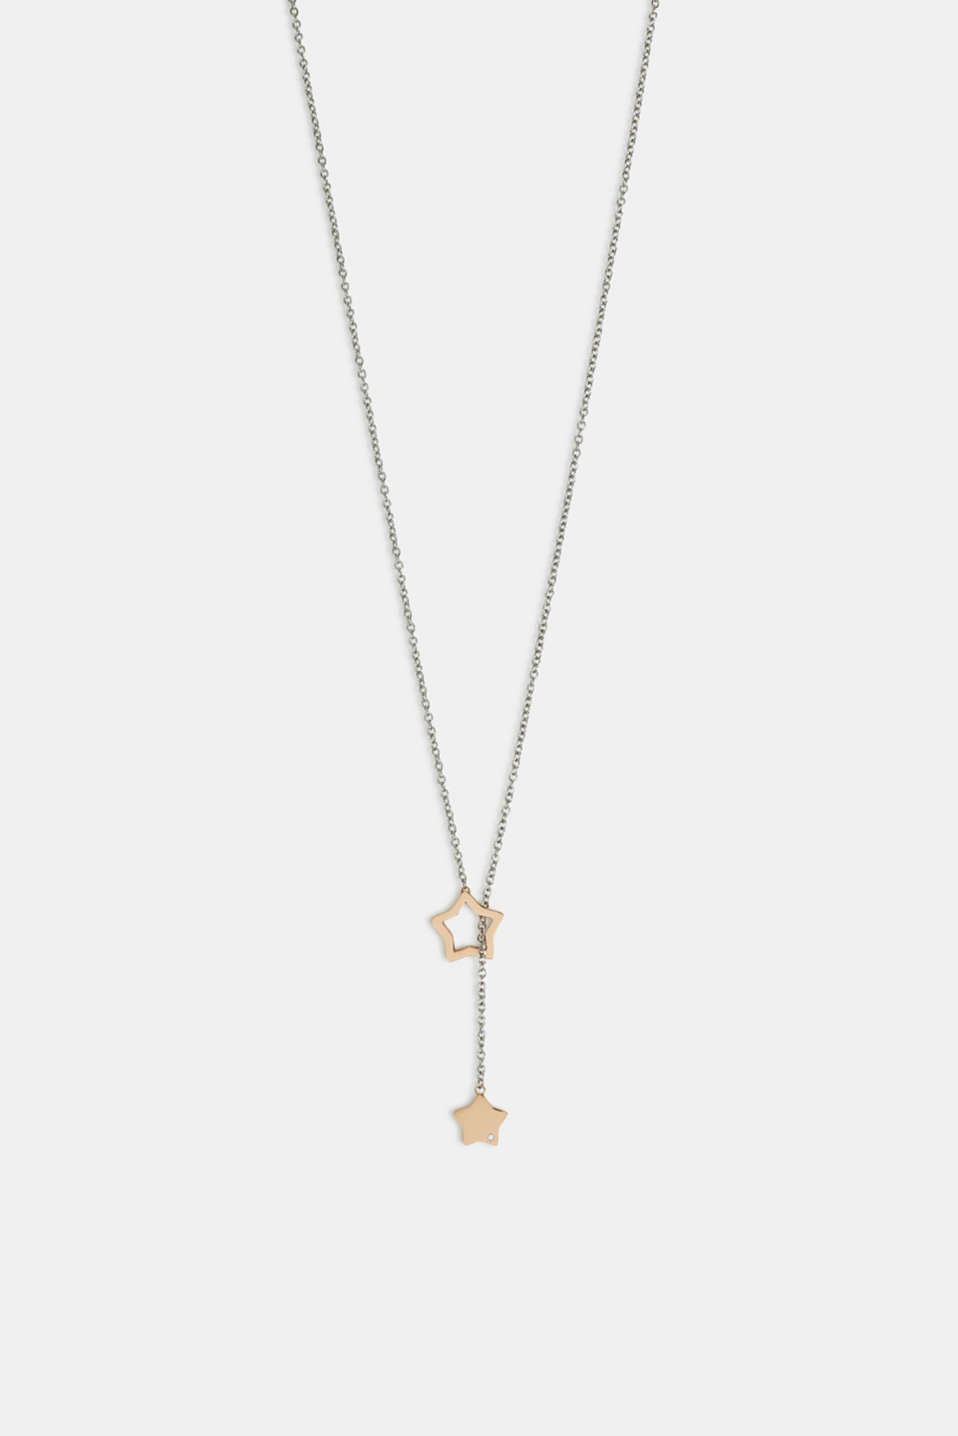 Necklace with star pendants, stainless steel, ROSEGOLD, detail image number 0